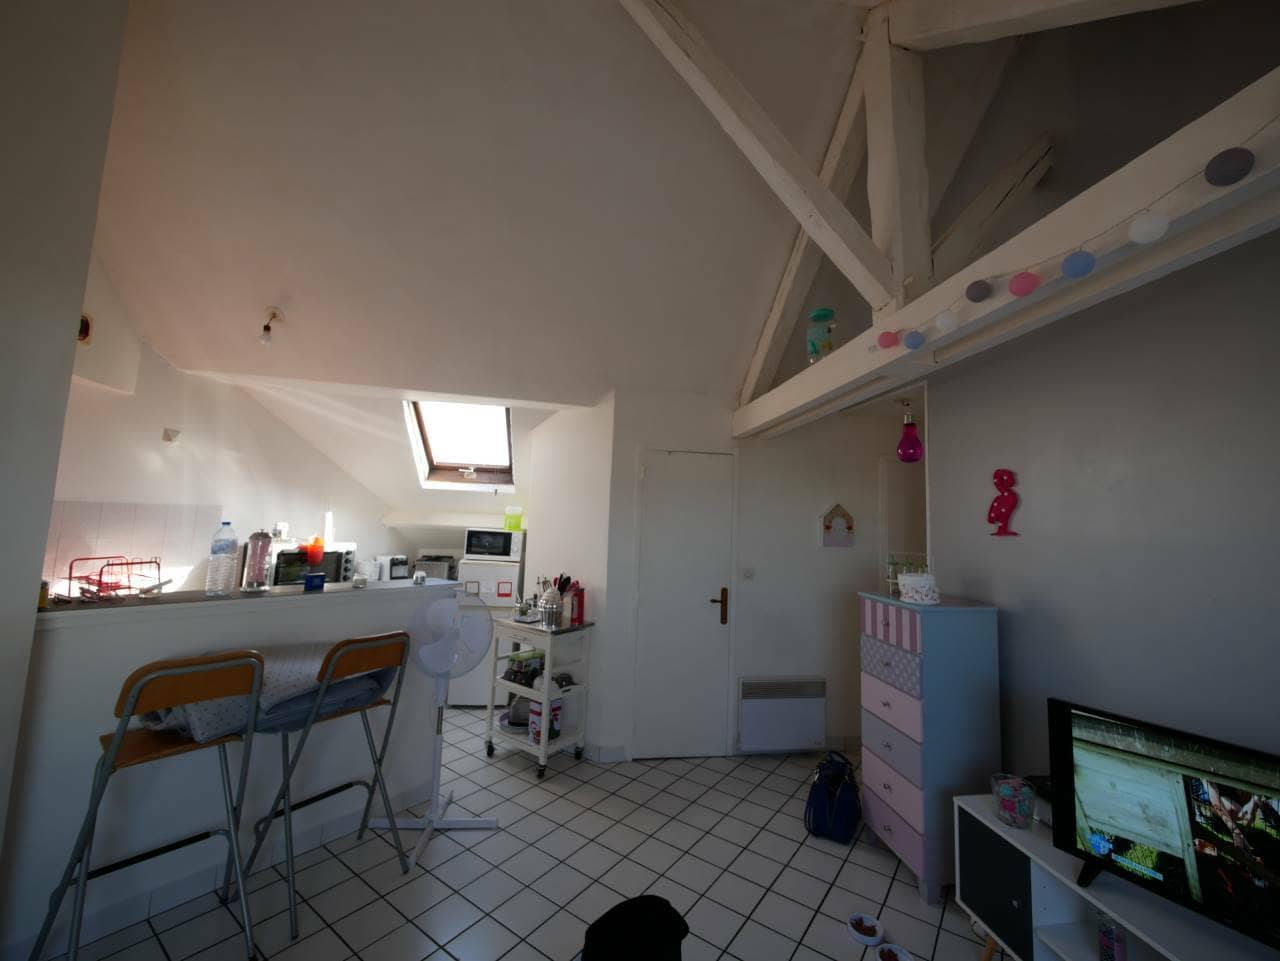 Location Appartement type F2 Le Havre 259